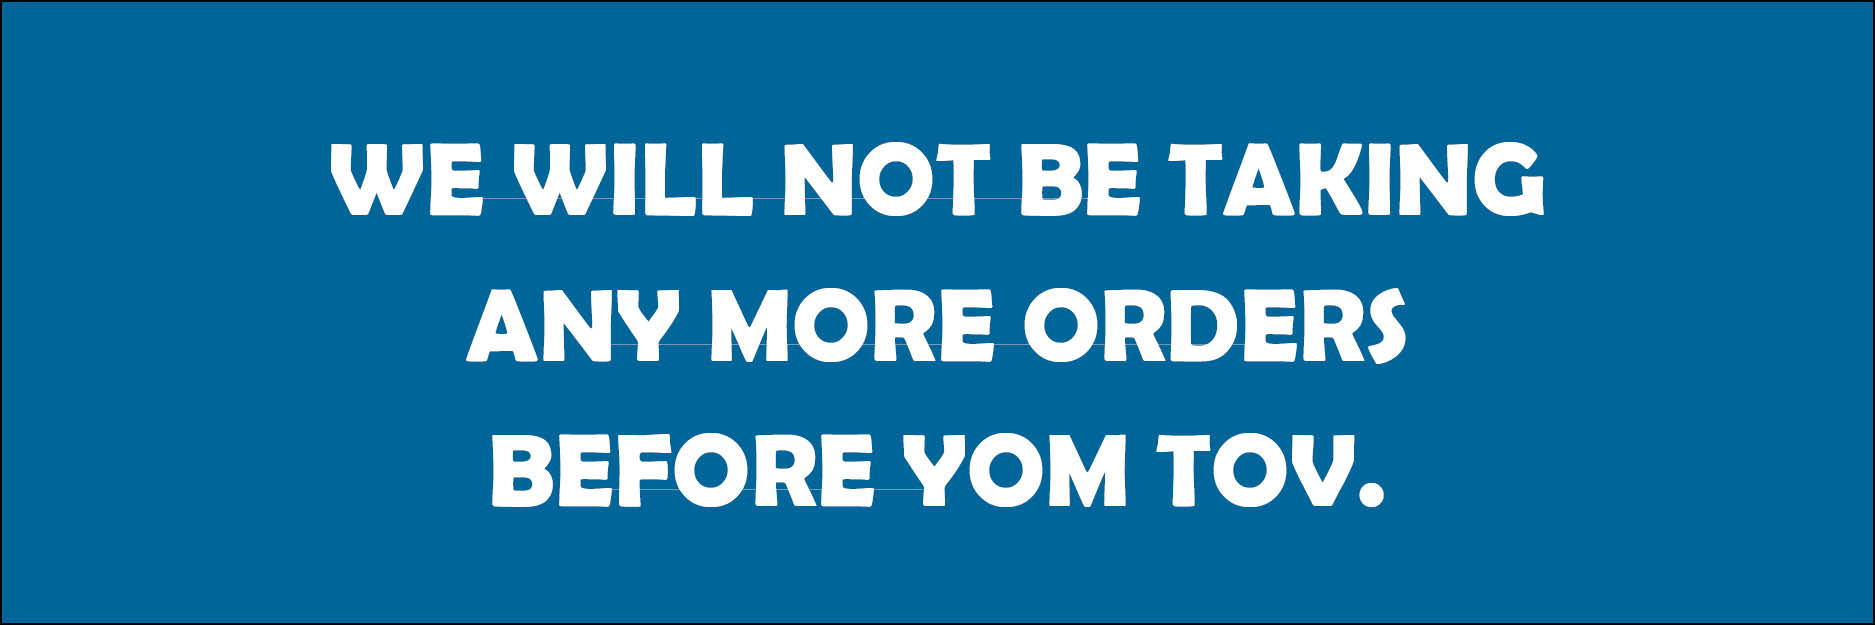 We will not be taking any more orders before Yom Tov.